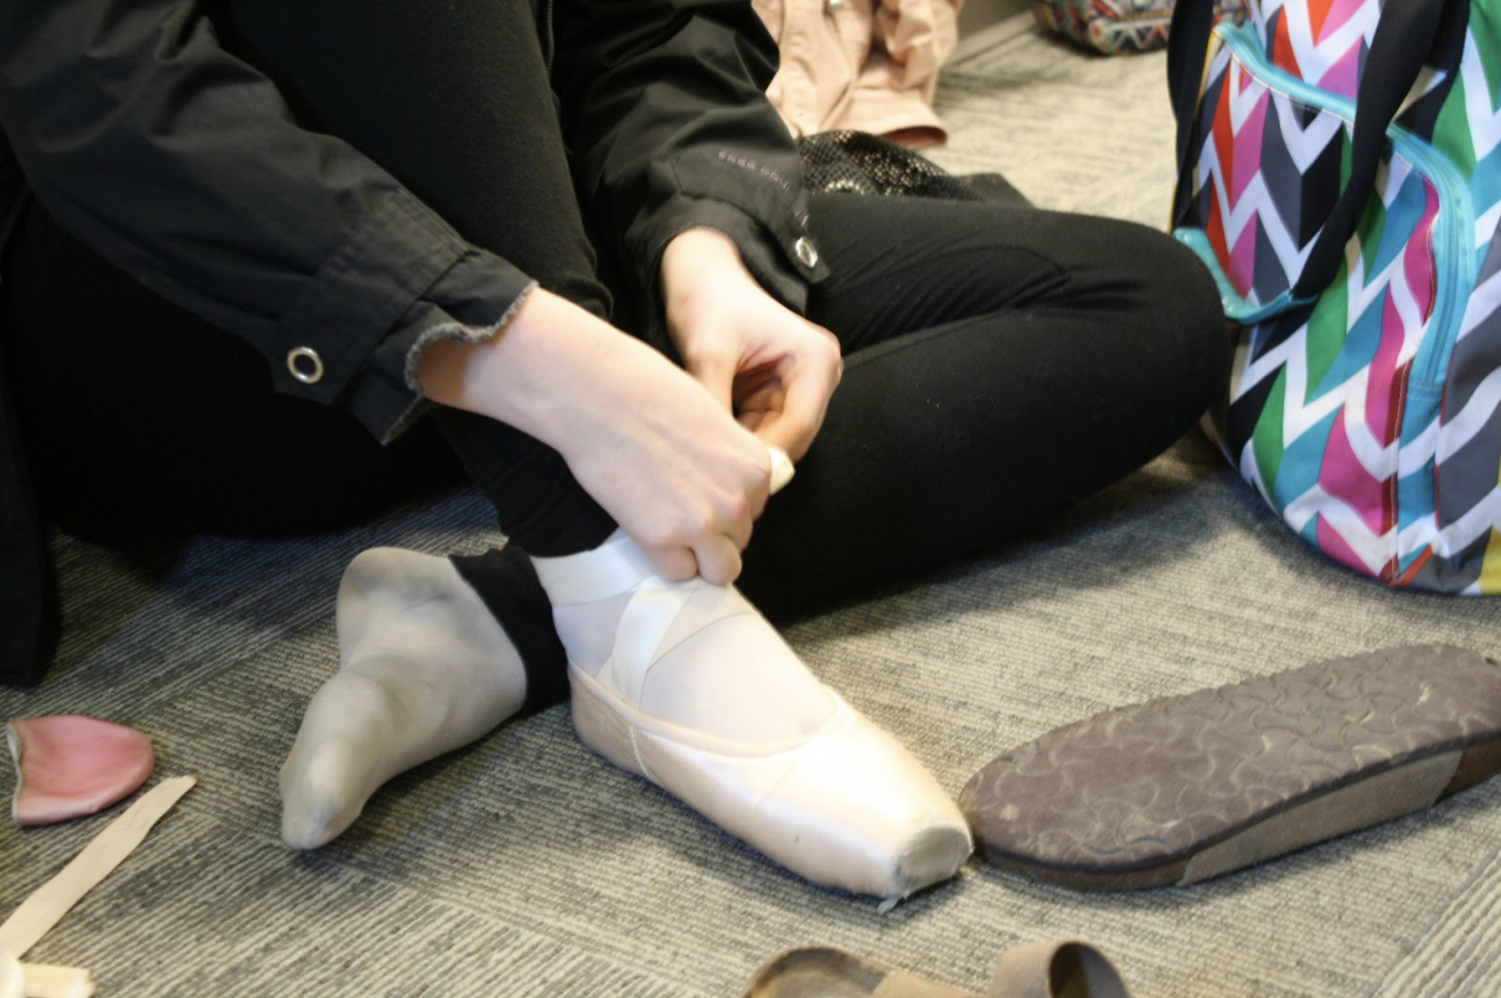 Elizabeth Arnold, 9, laces her pointe shoes. Photo by Kylie Heagy